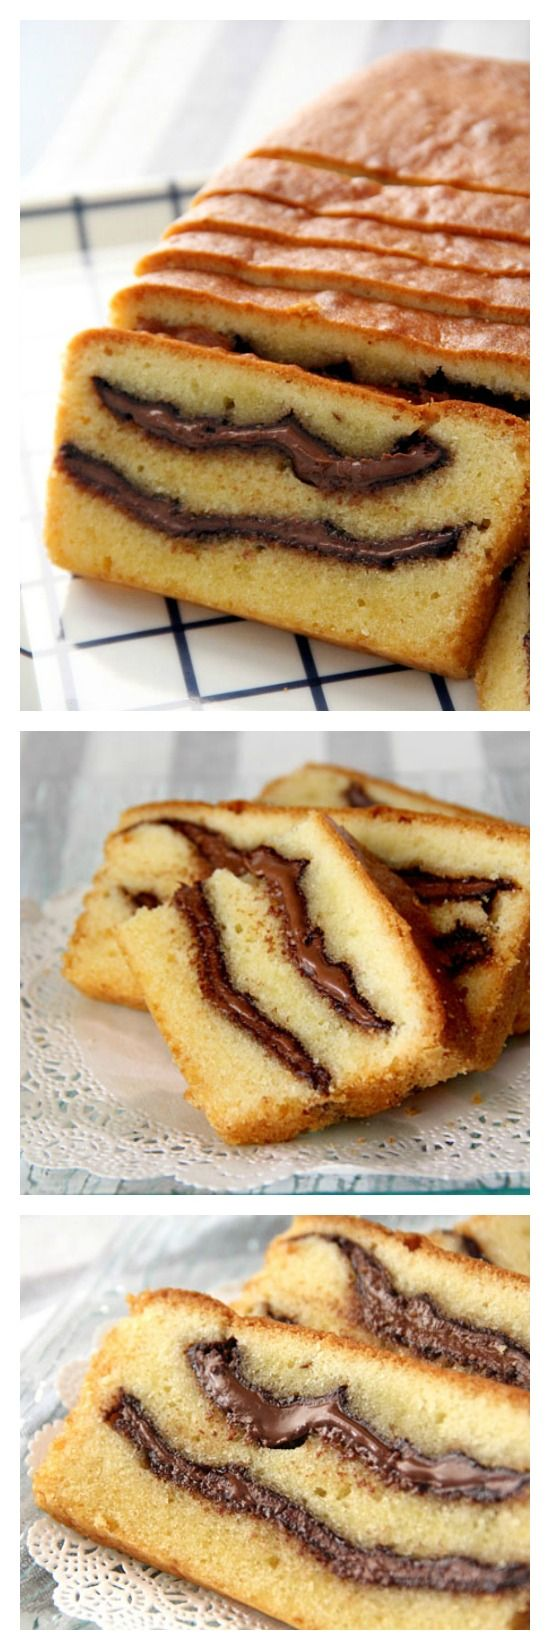 Nutella Pound Cake Recipe. Super rich, buttery, sweet pound cake loaded with…